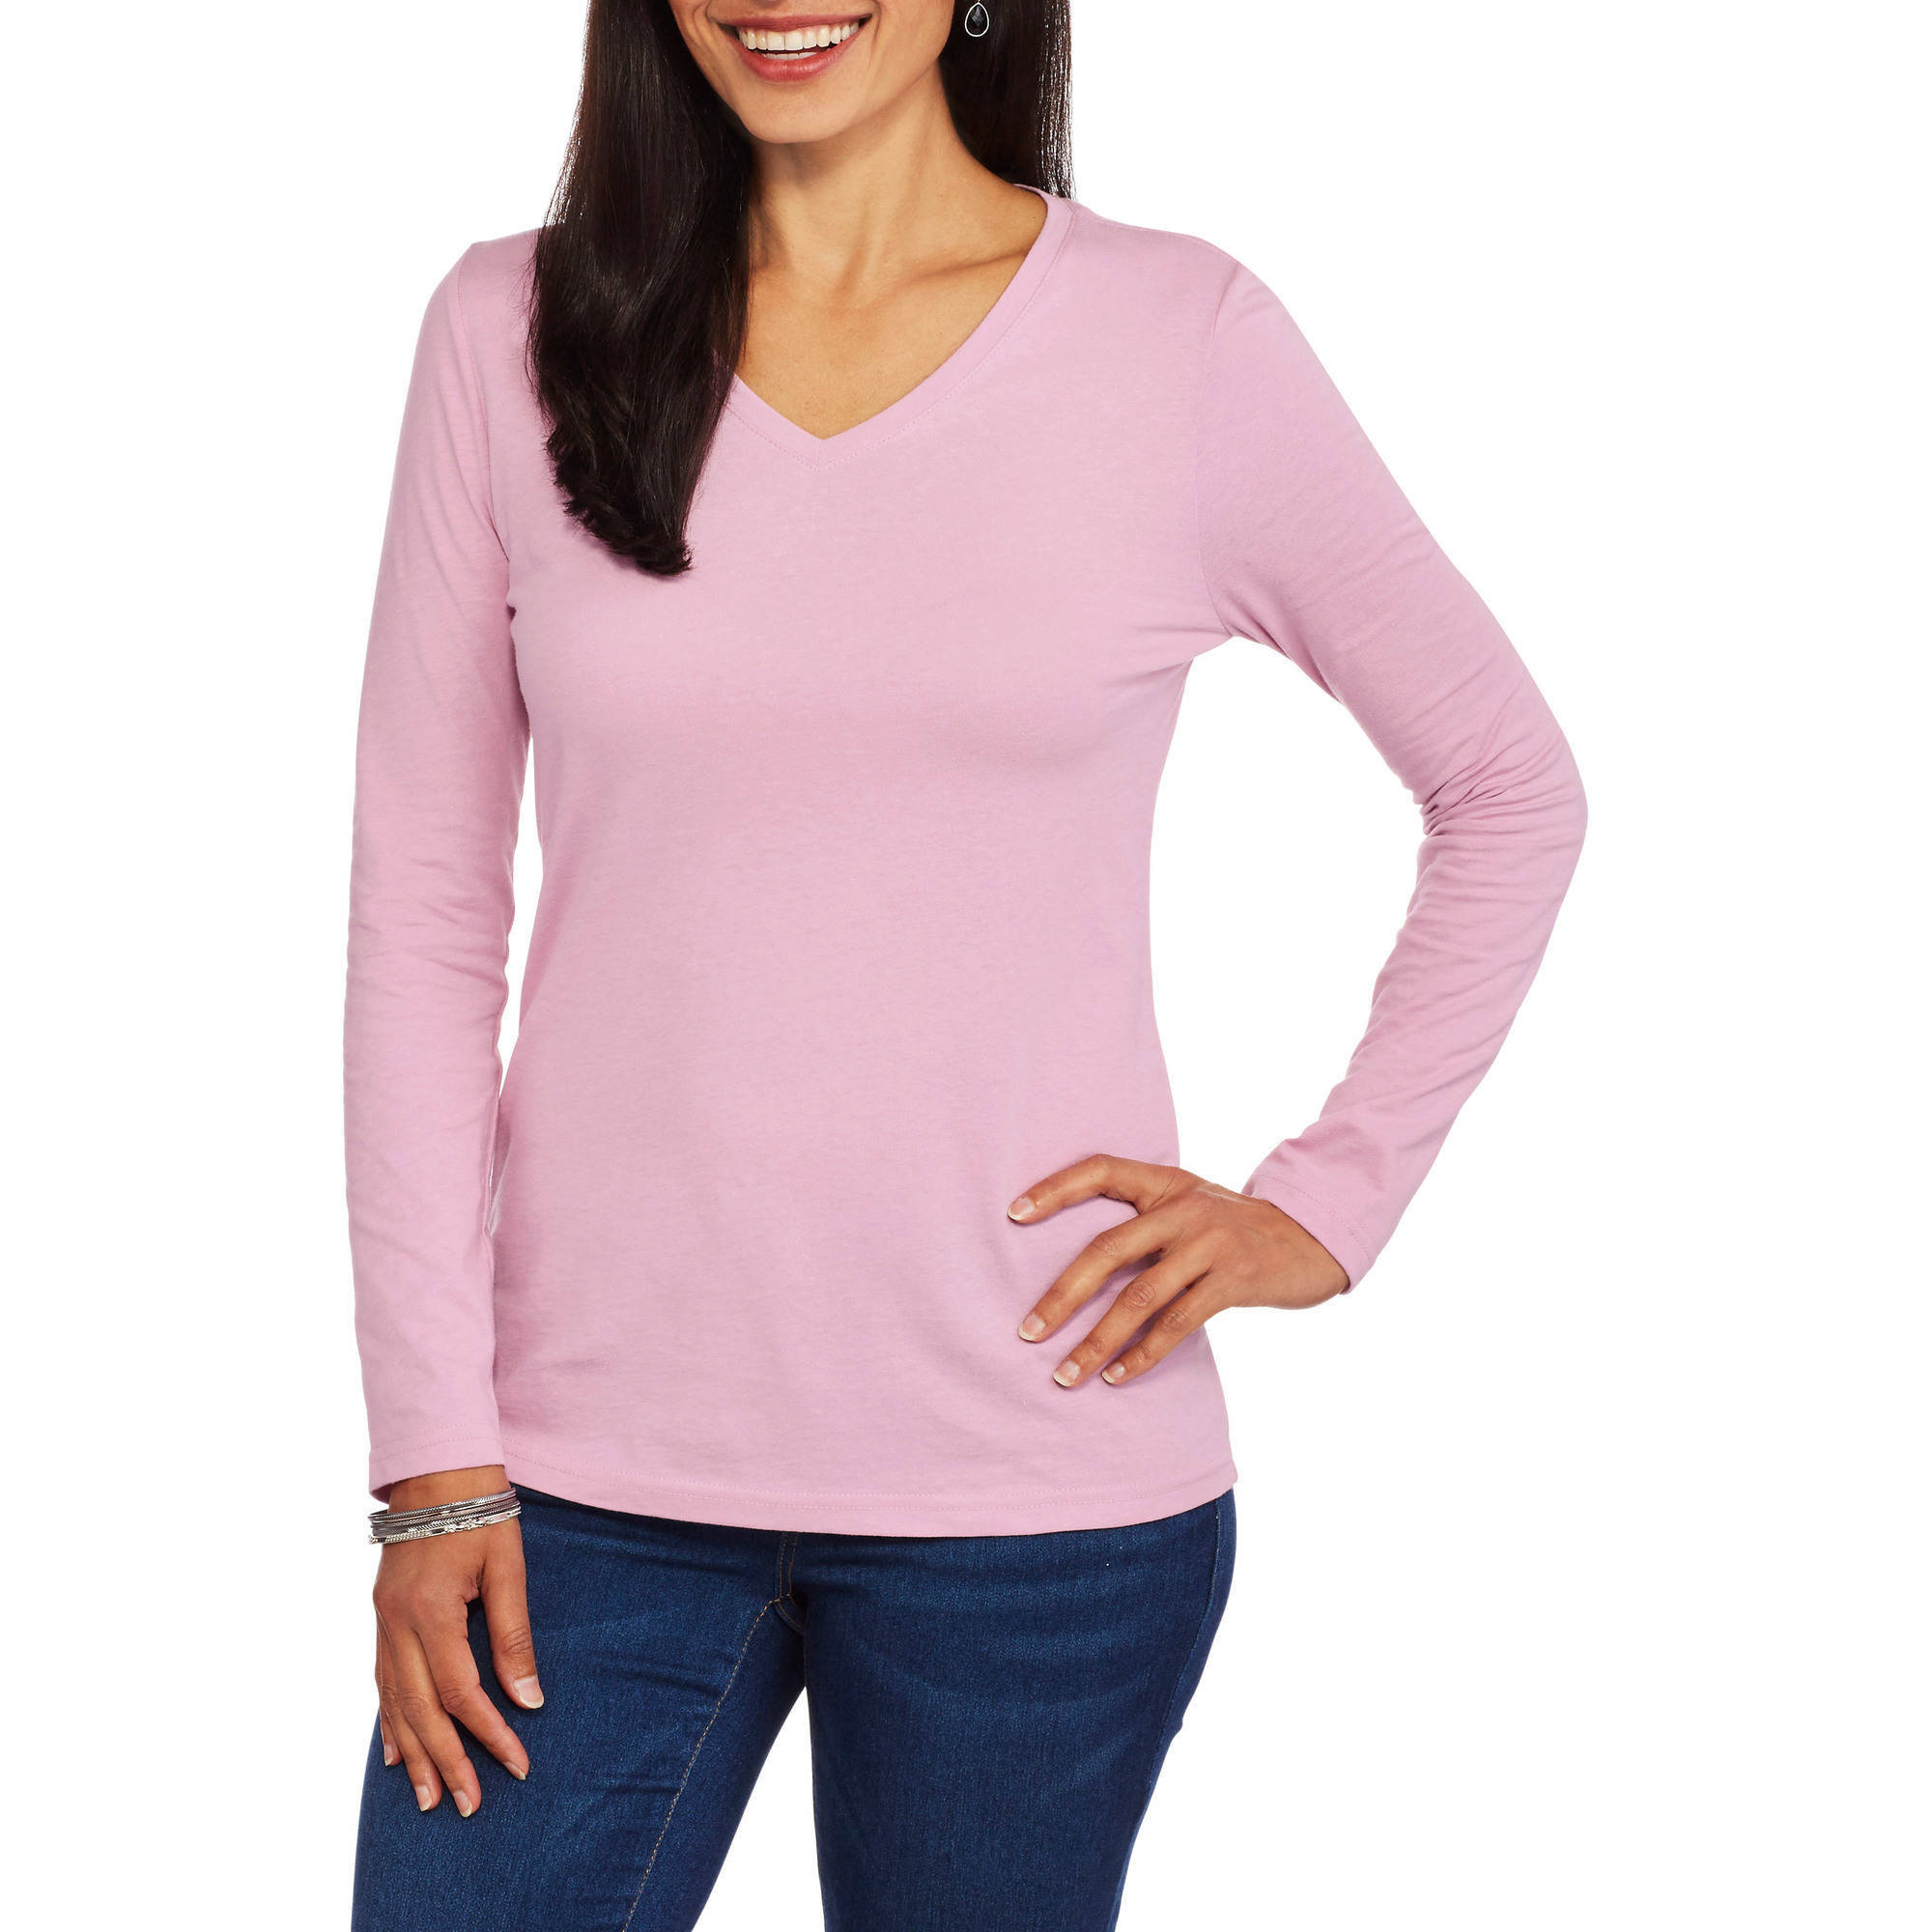 Gildan women 39 s fitted long sleeve t shirt for Long sleeve fitted tee shirt